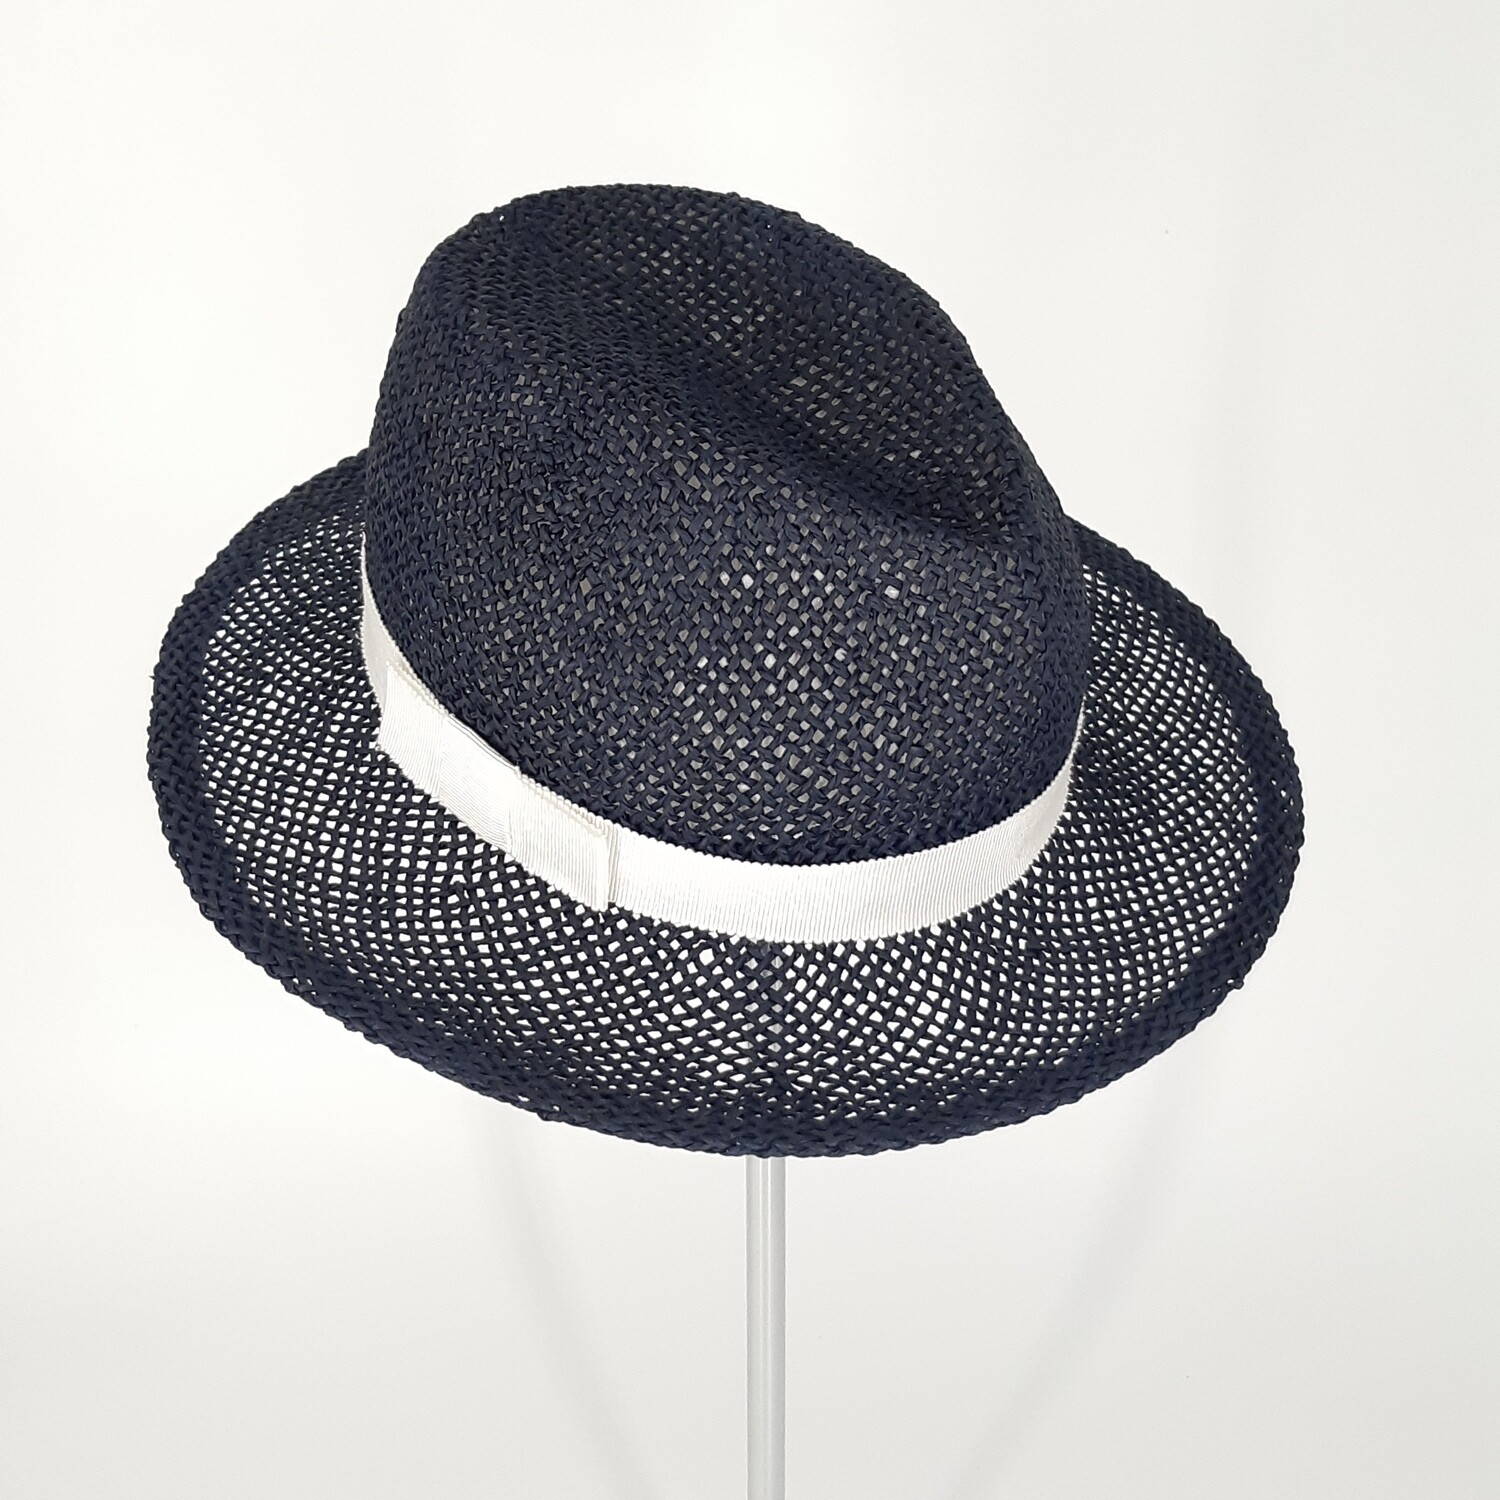 Zomer fedora hoed in donker blauw papyrus